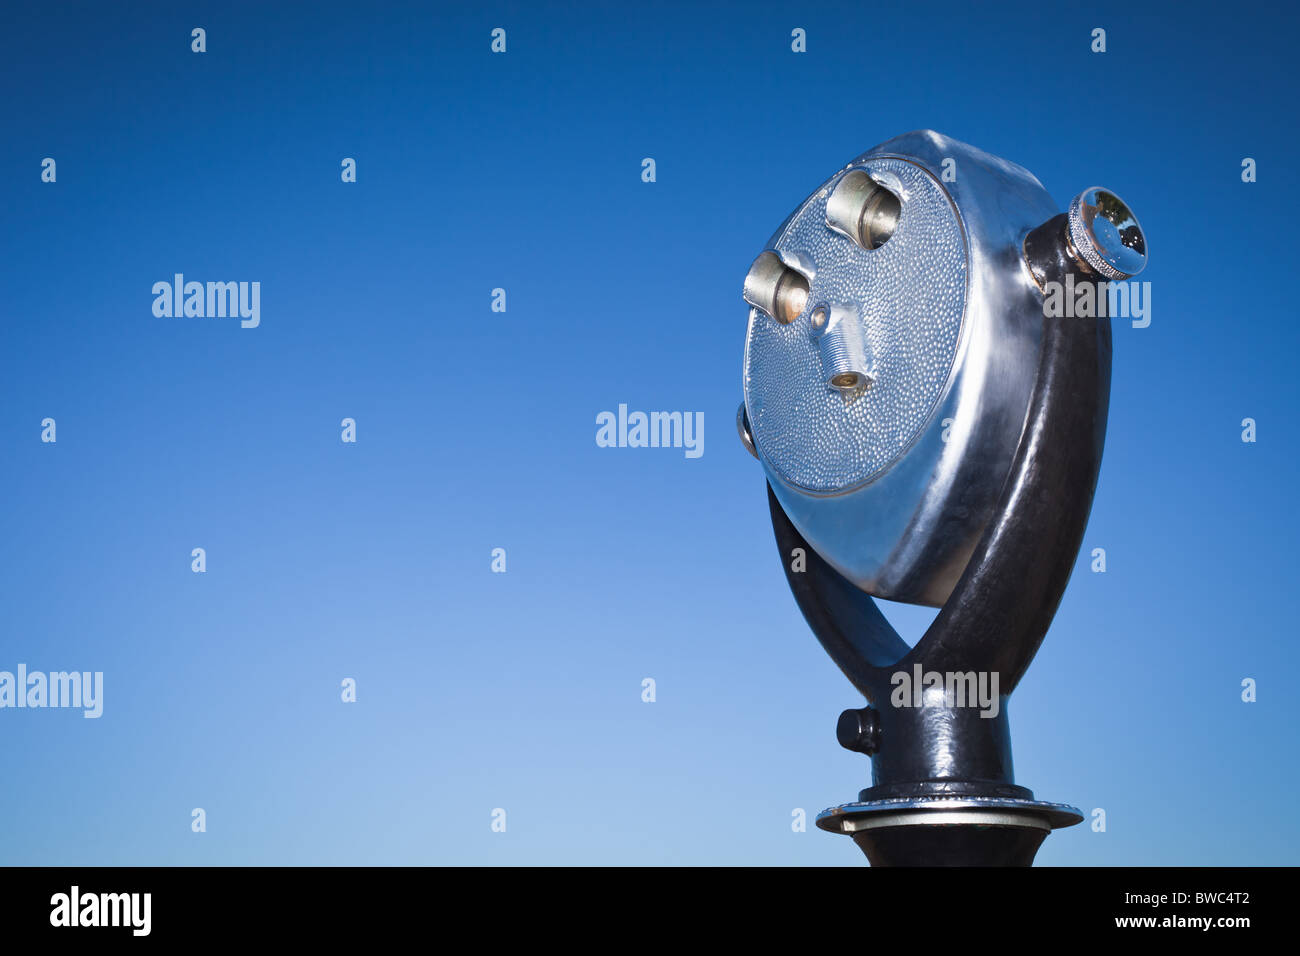 Telescopic viewer against blue sky - Stock Image